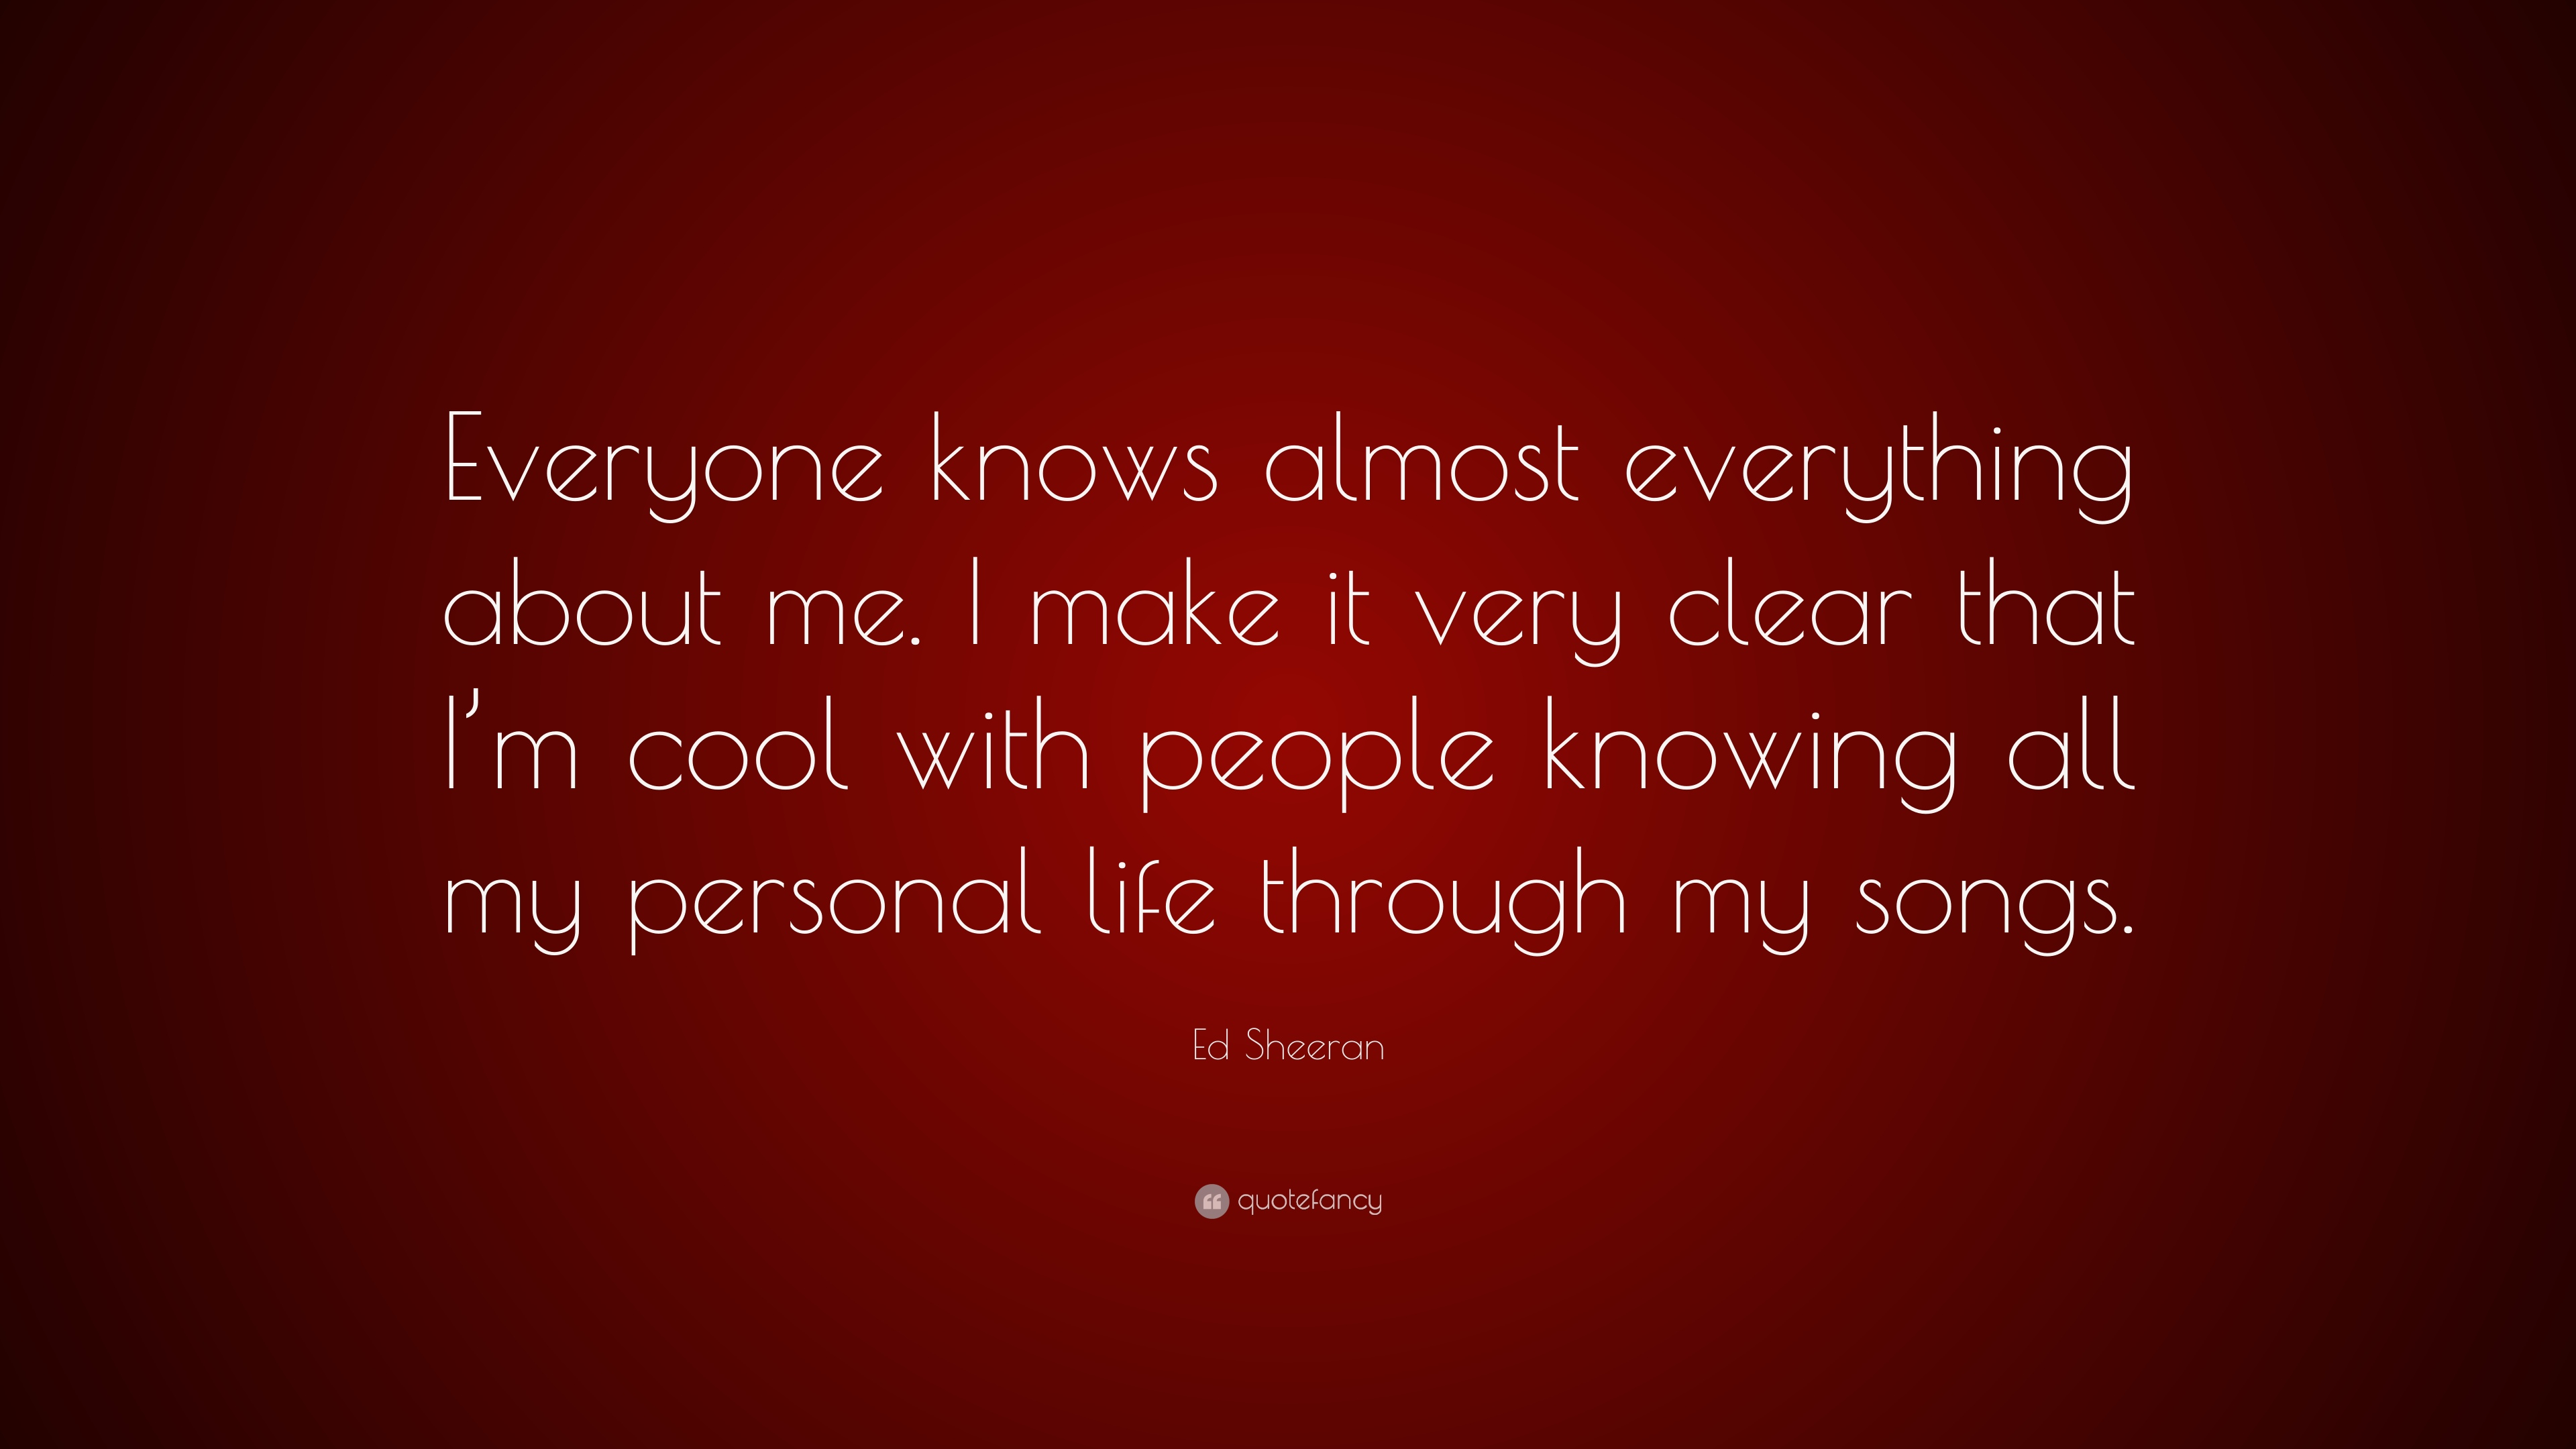 Ed Sheeran Quote Everyone Knows Almost Everything About Me I Make It Very Clear That I M Cool With People Knowing All My Personal Life T 10 Wallpapers Quotefancy